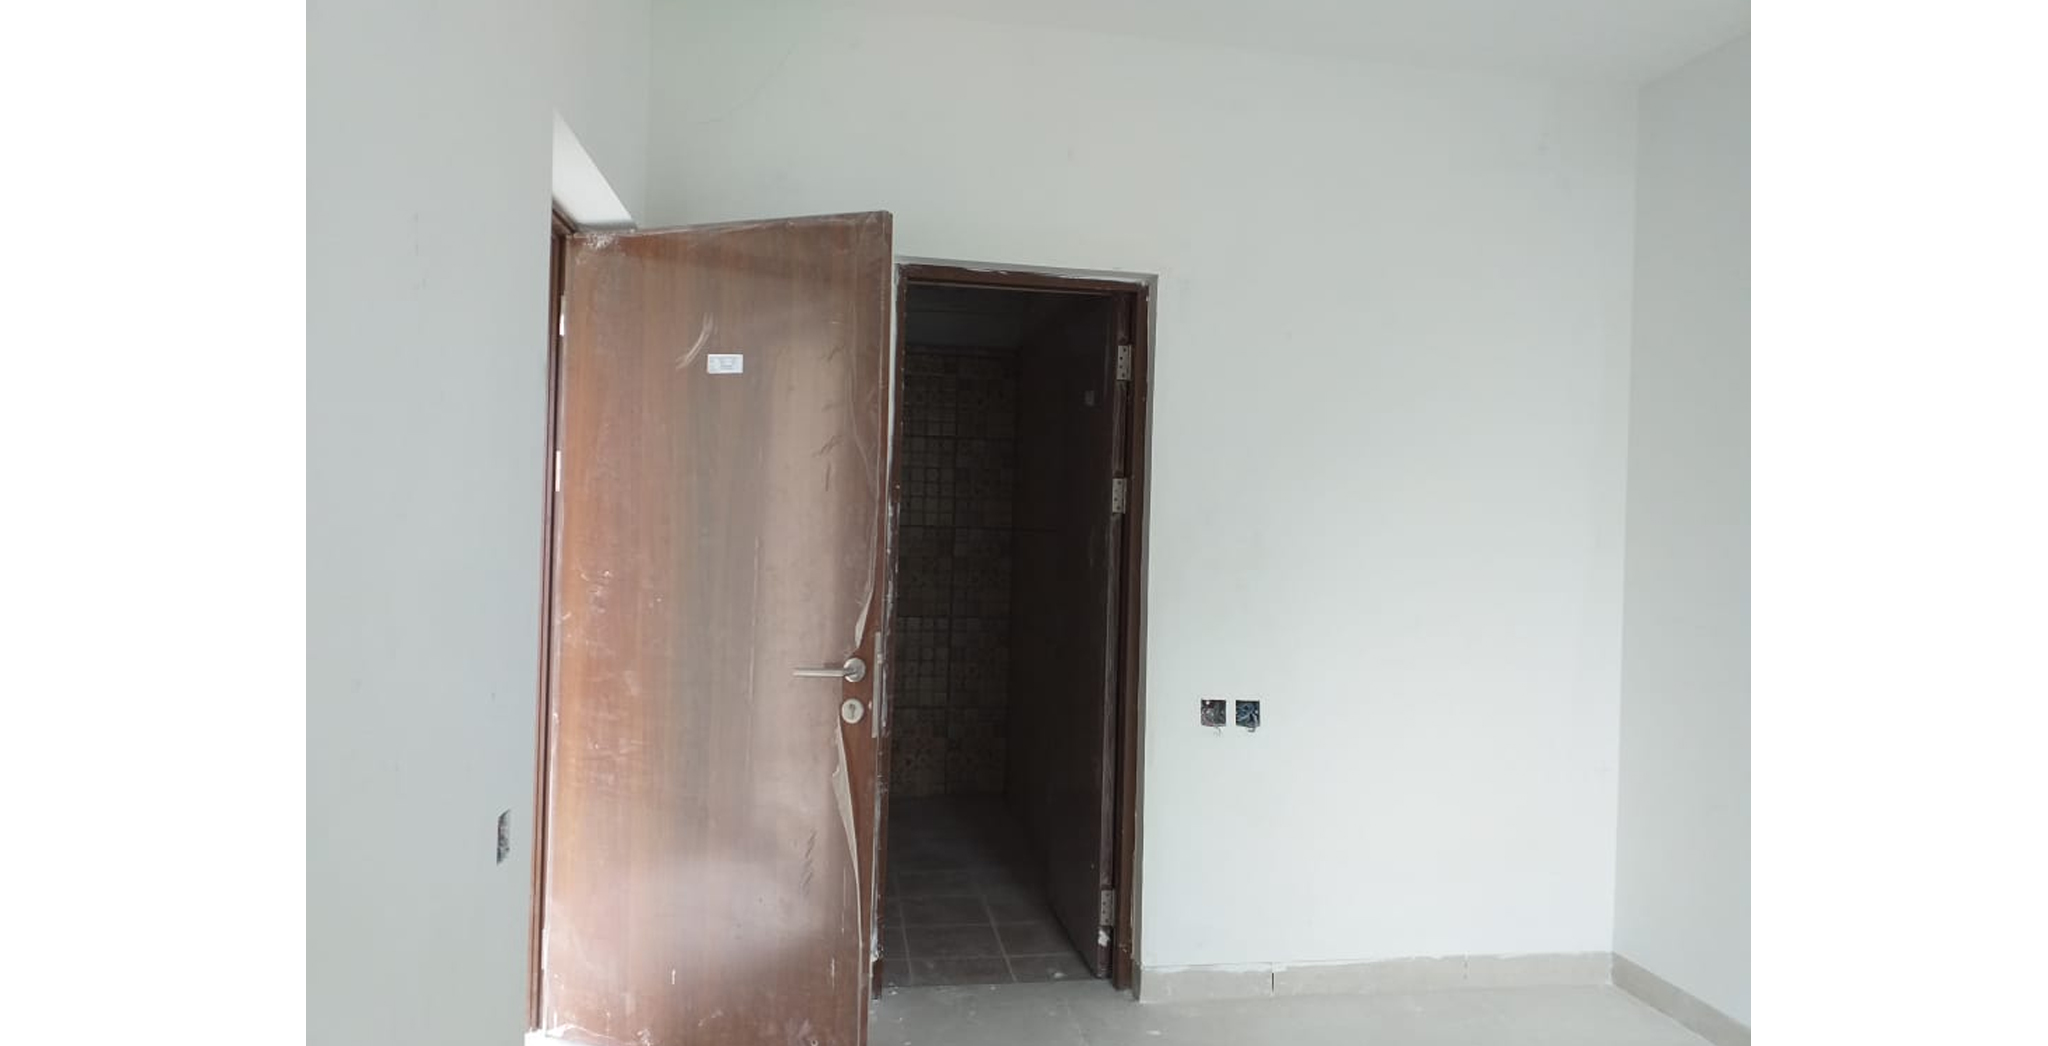 Sep 2021 - Blocks K, L, M and N: On commencement of fixing of doors and windows